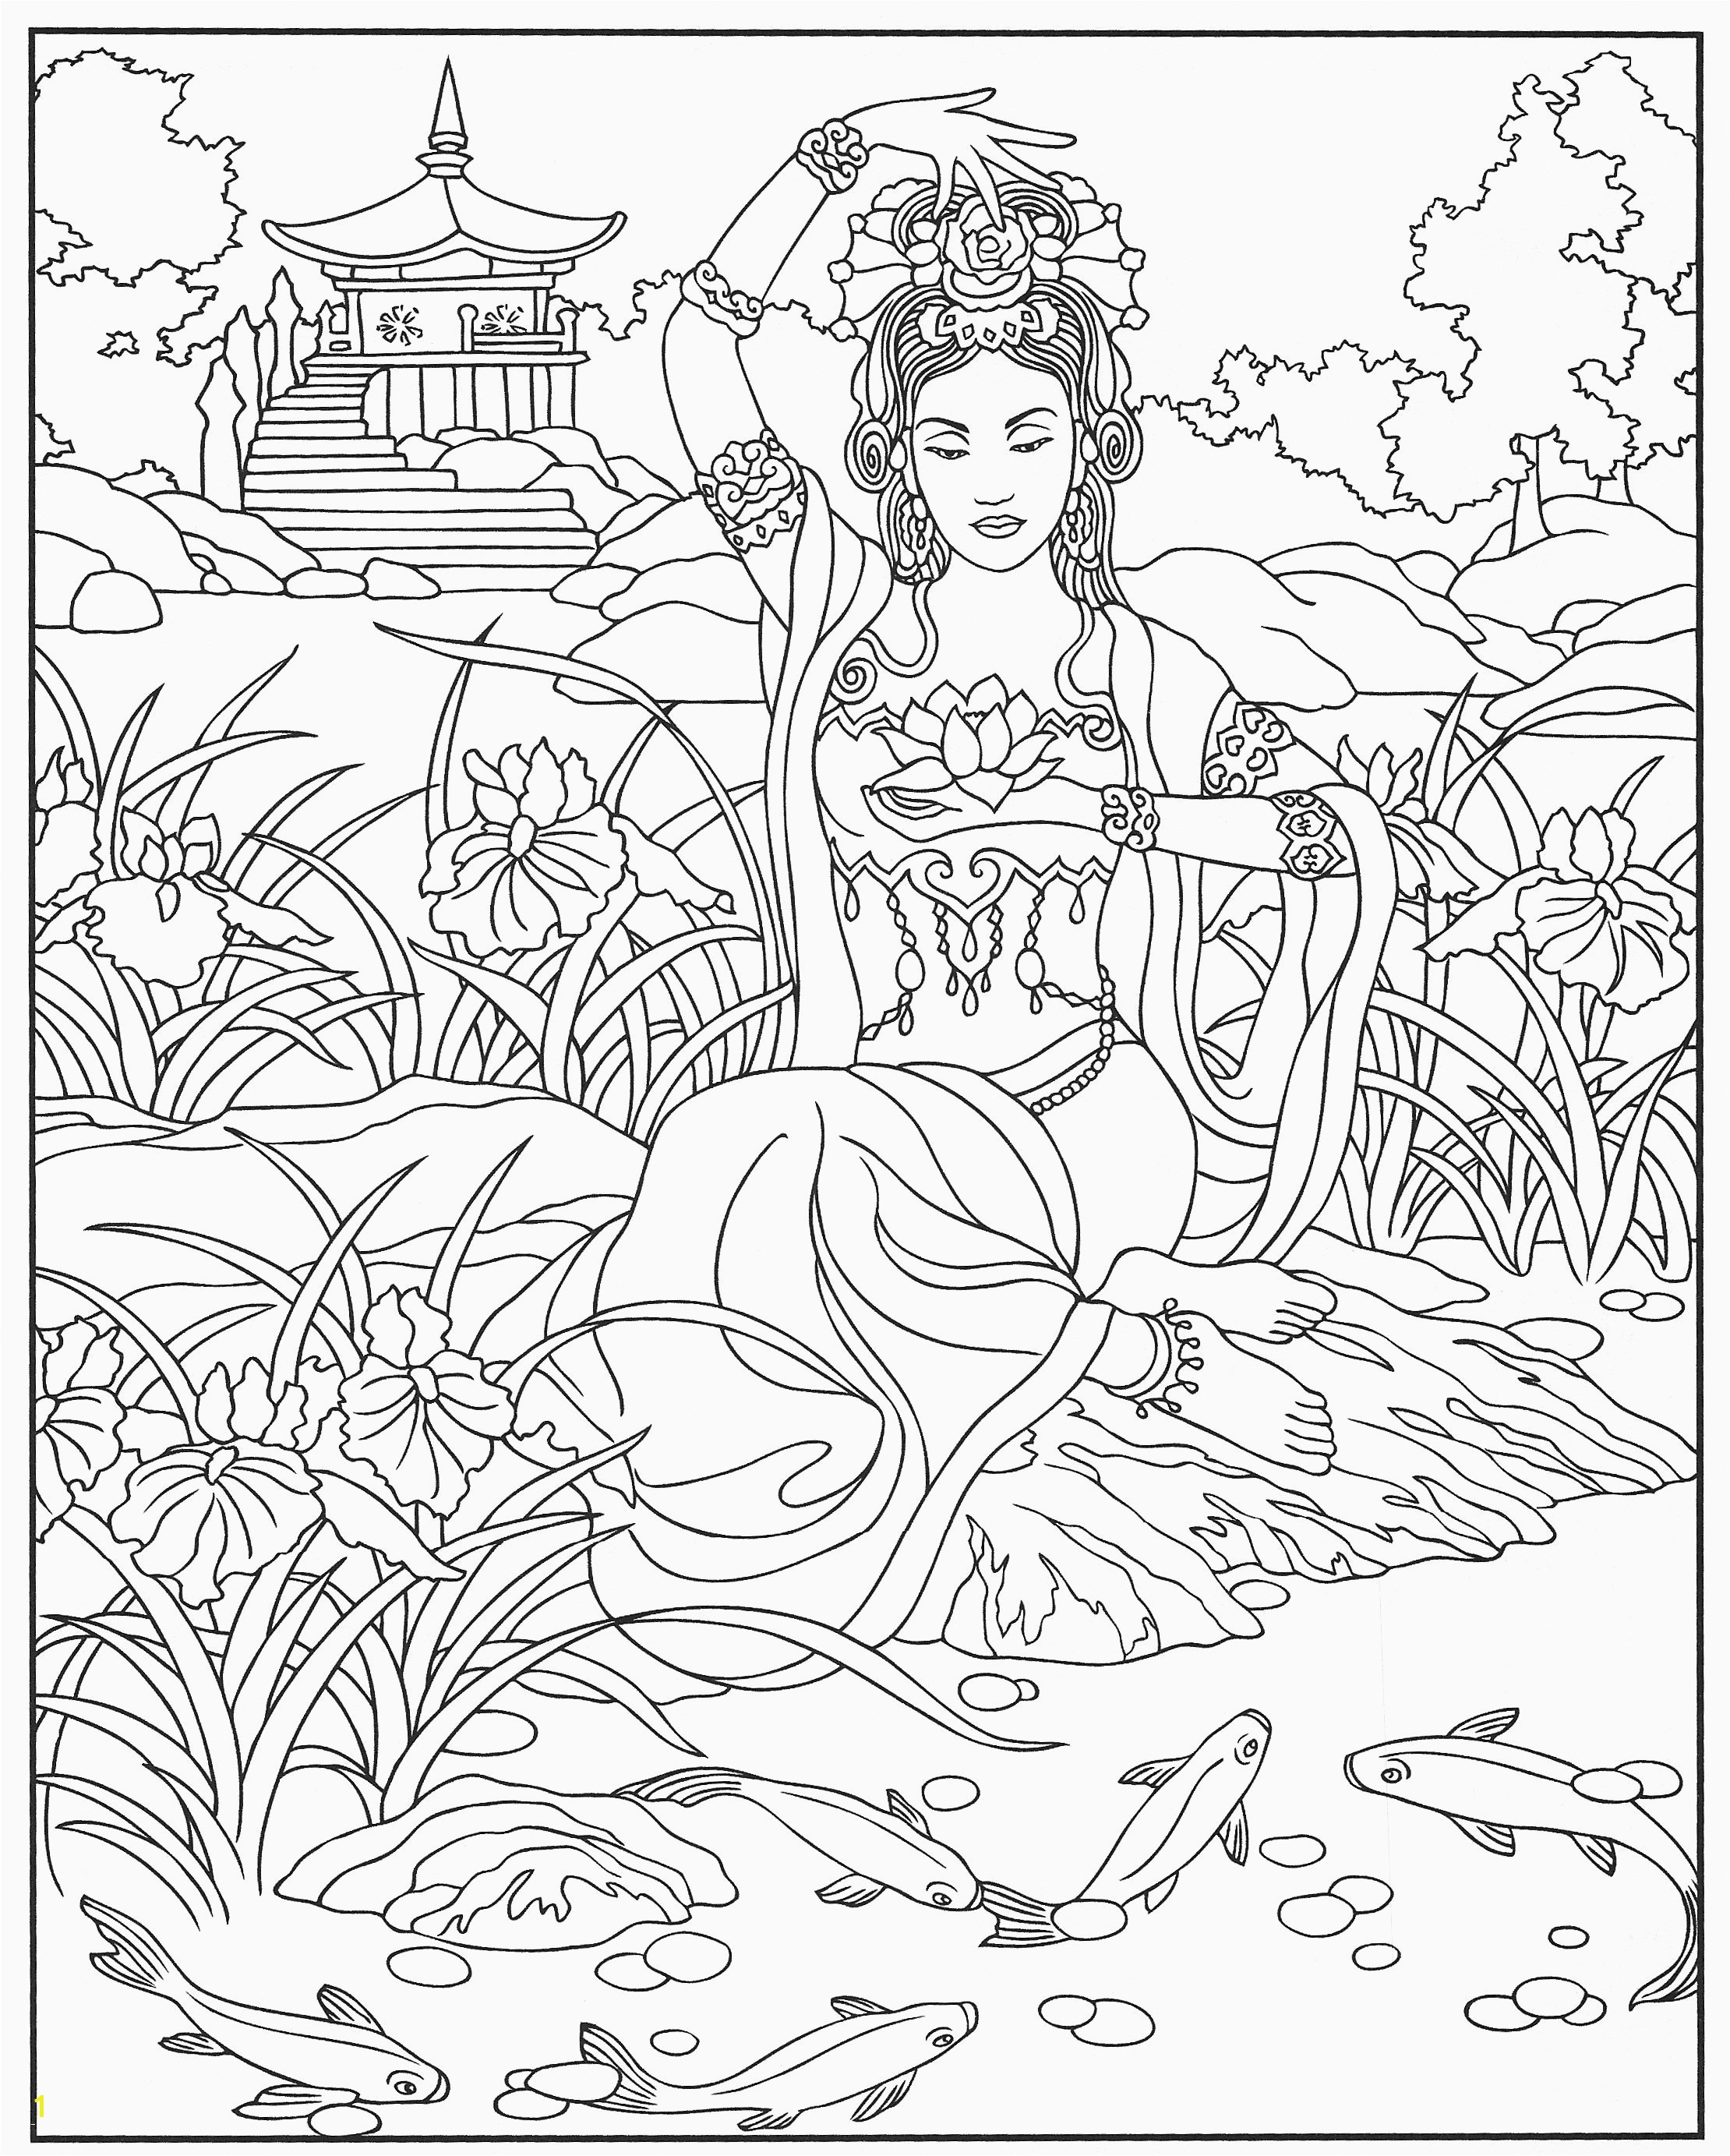 Cool Coloring Page Unique Witch Coloring Pages New Crayola Pages 0d Reading Coloring Page Az